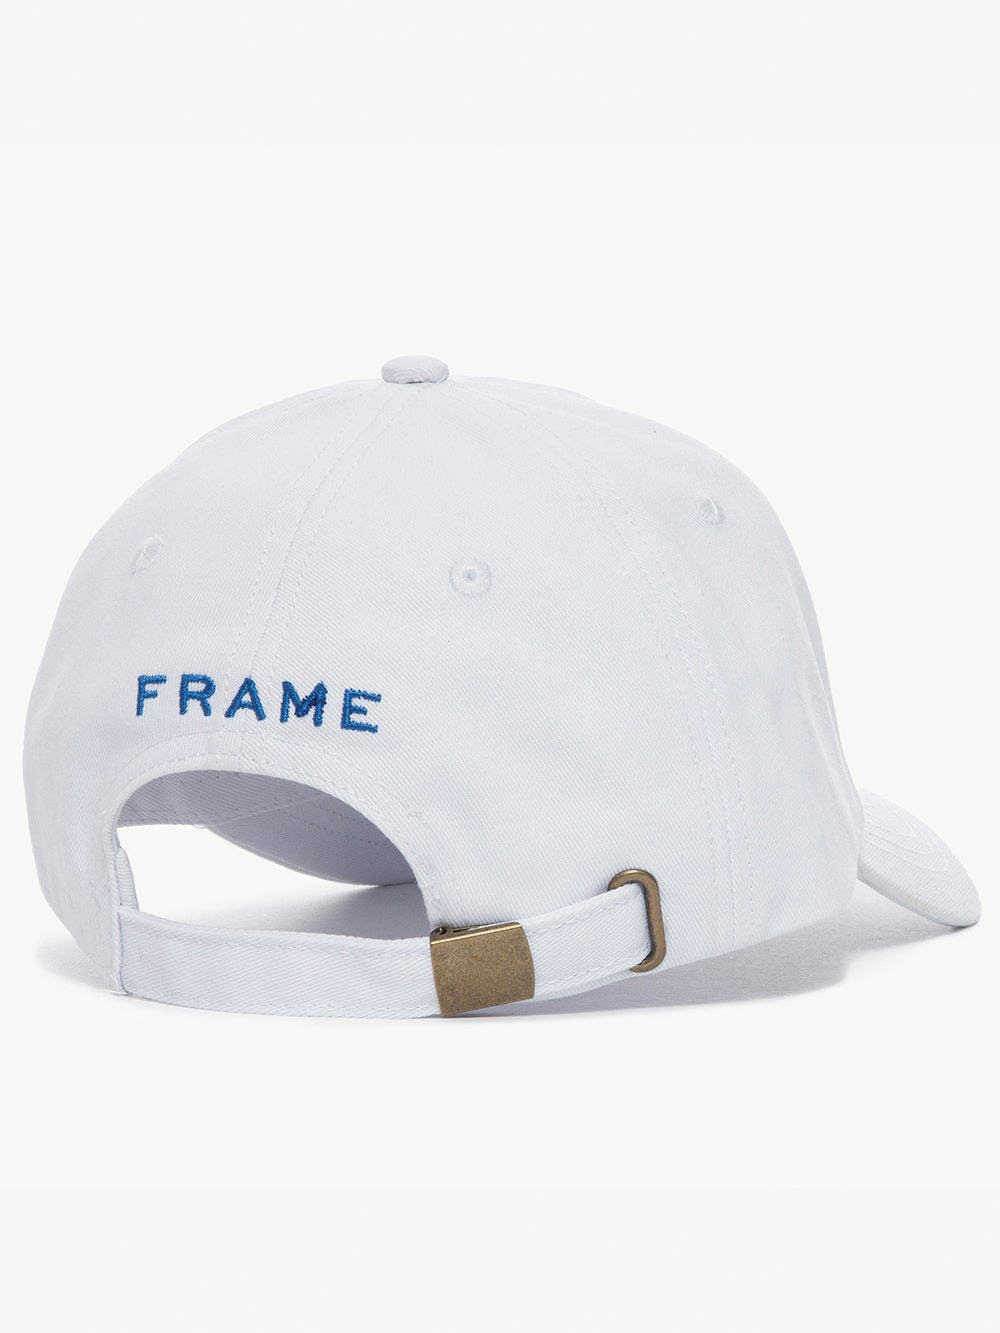 hat back view